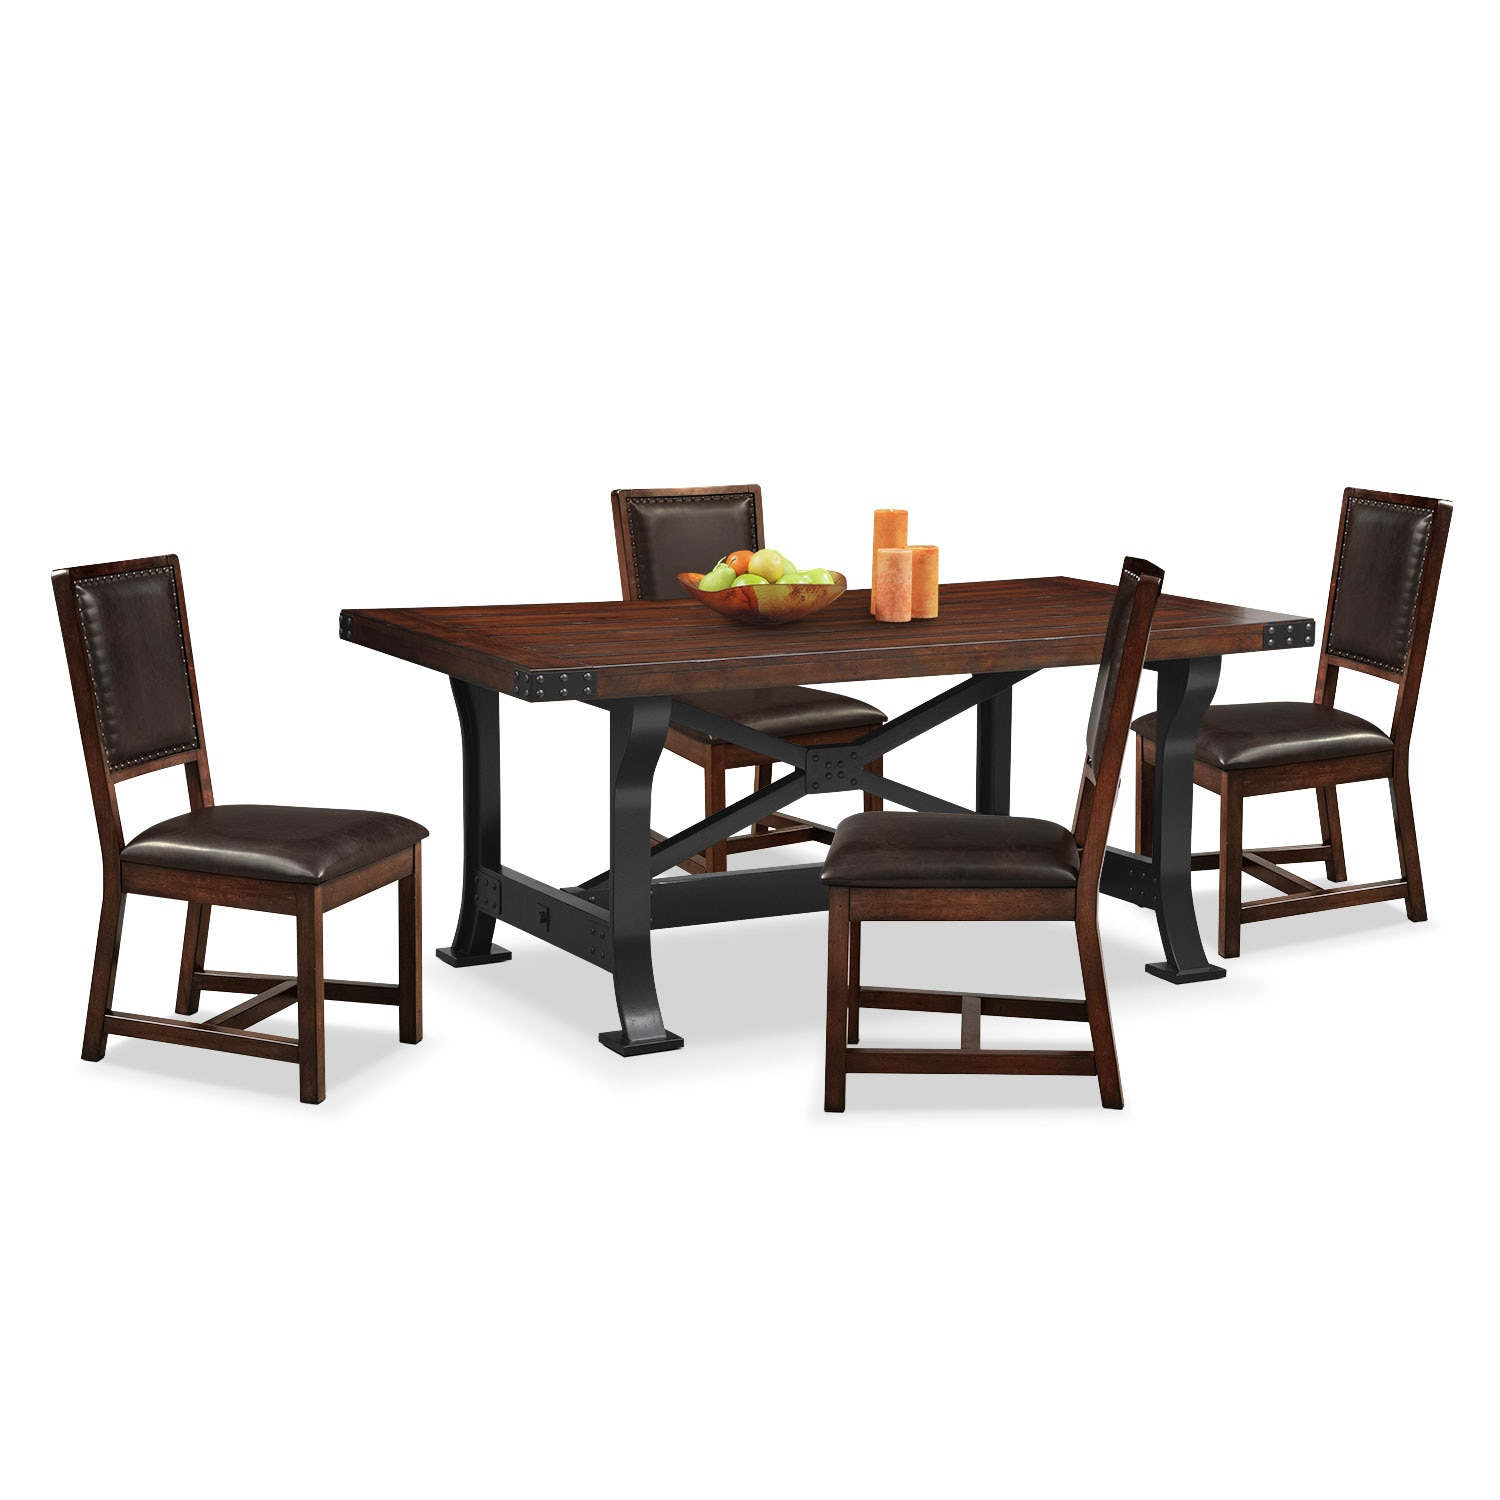 Newcastle Table And 4 Chairs Mahogany American